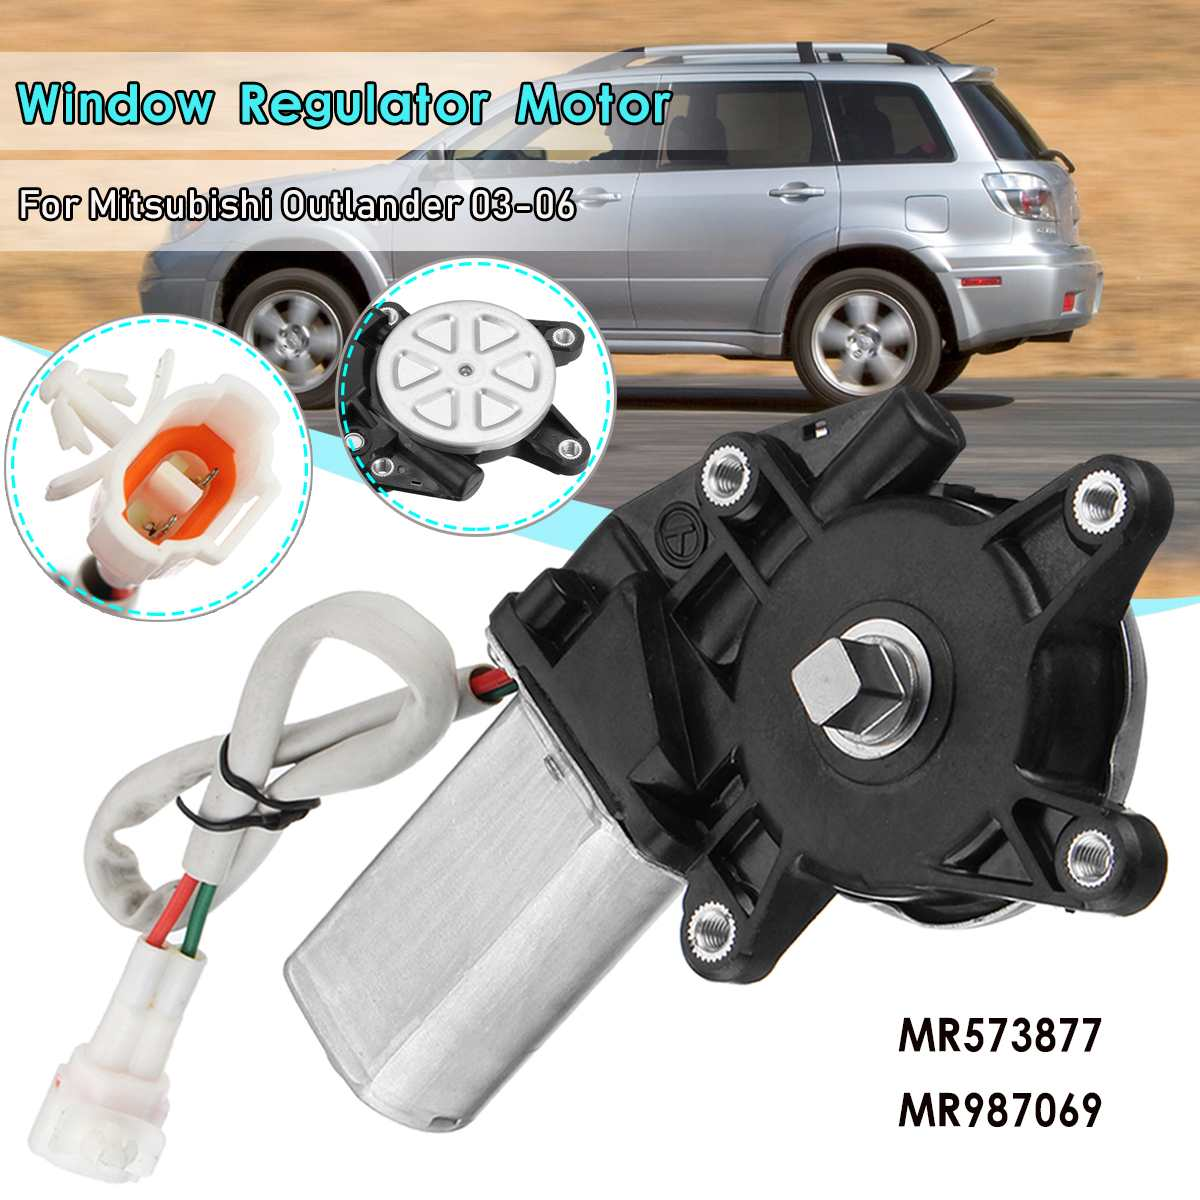 MR573877 Front Left Window Regulator Motor For Mitsubishi Outlander 2003 2006 2004 2005